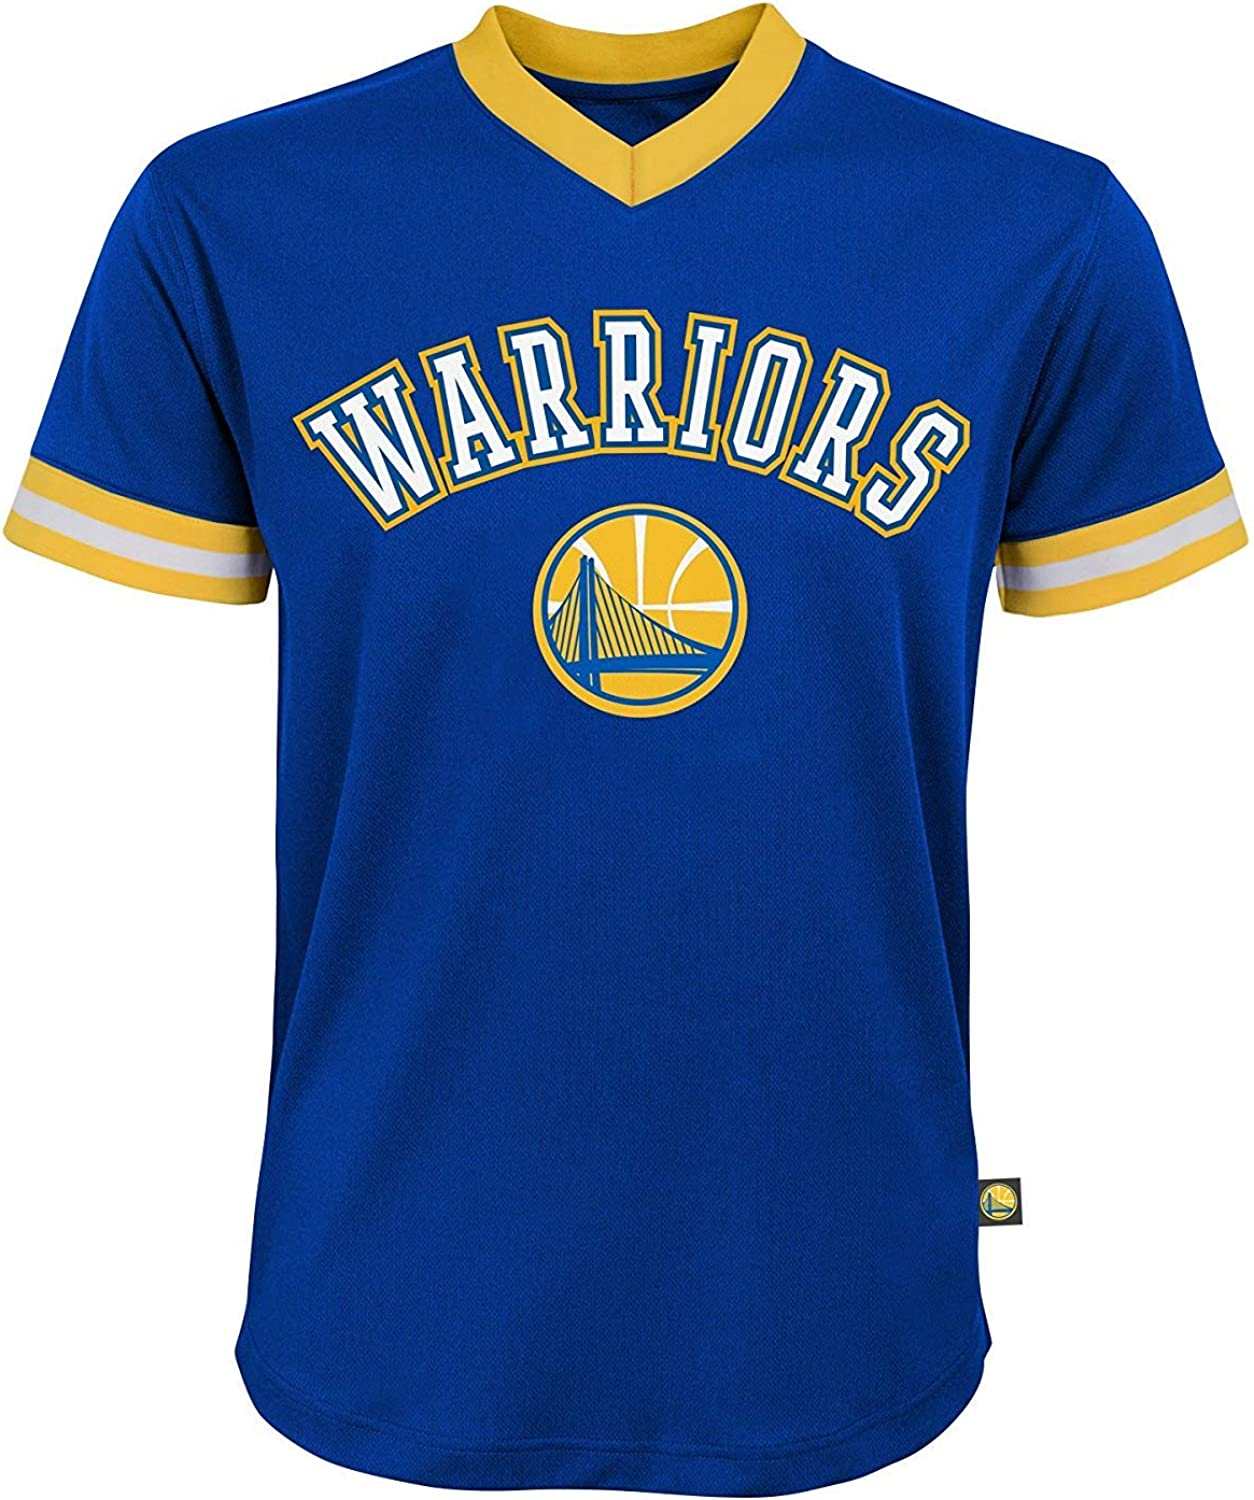 Outerstuff NBA Boys Youth 8-20 Short Sleeve Player Name /& Number Performance Jersey